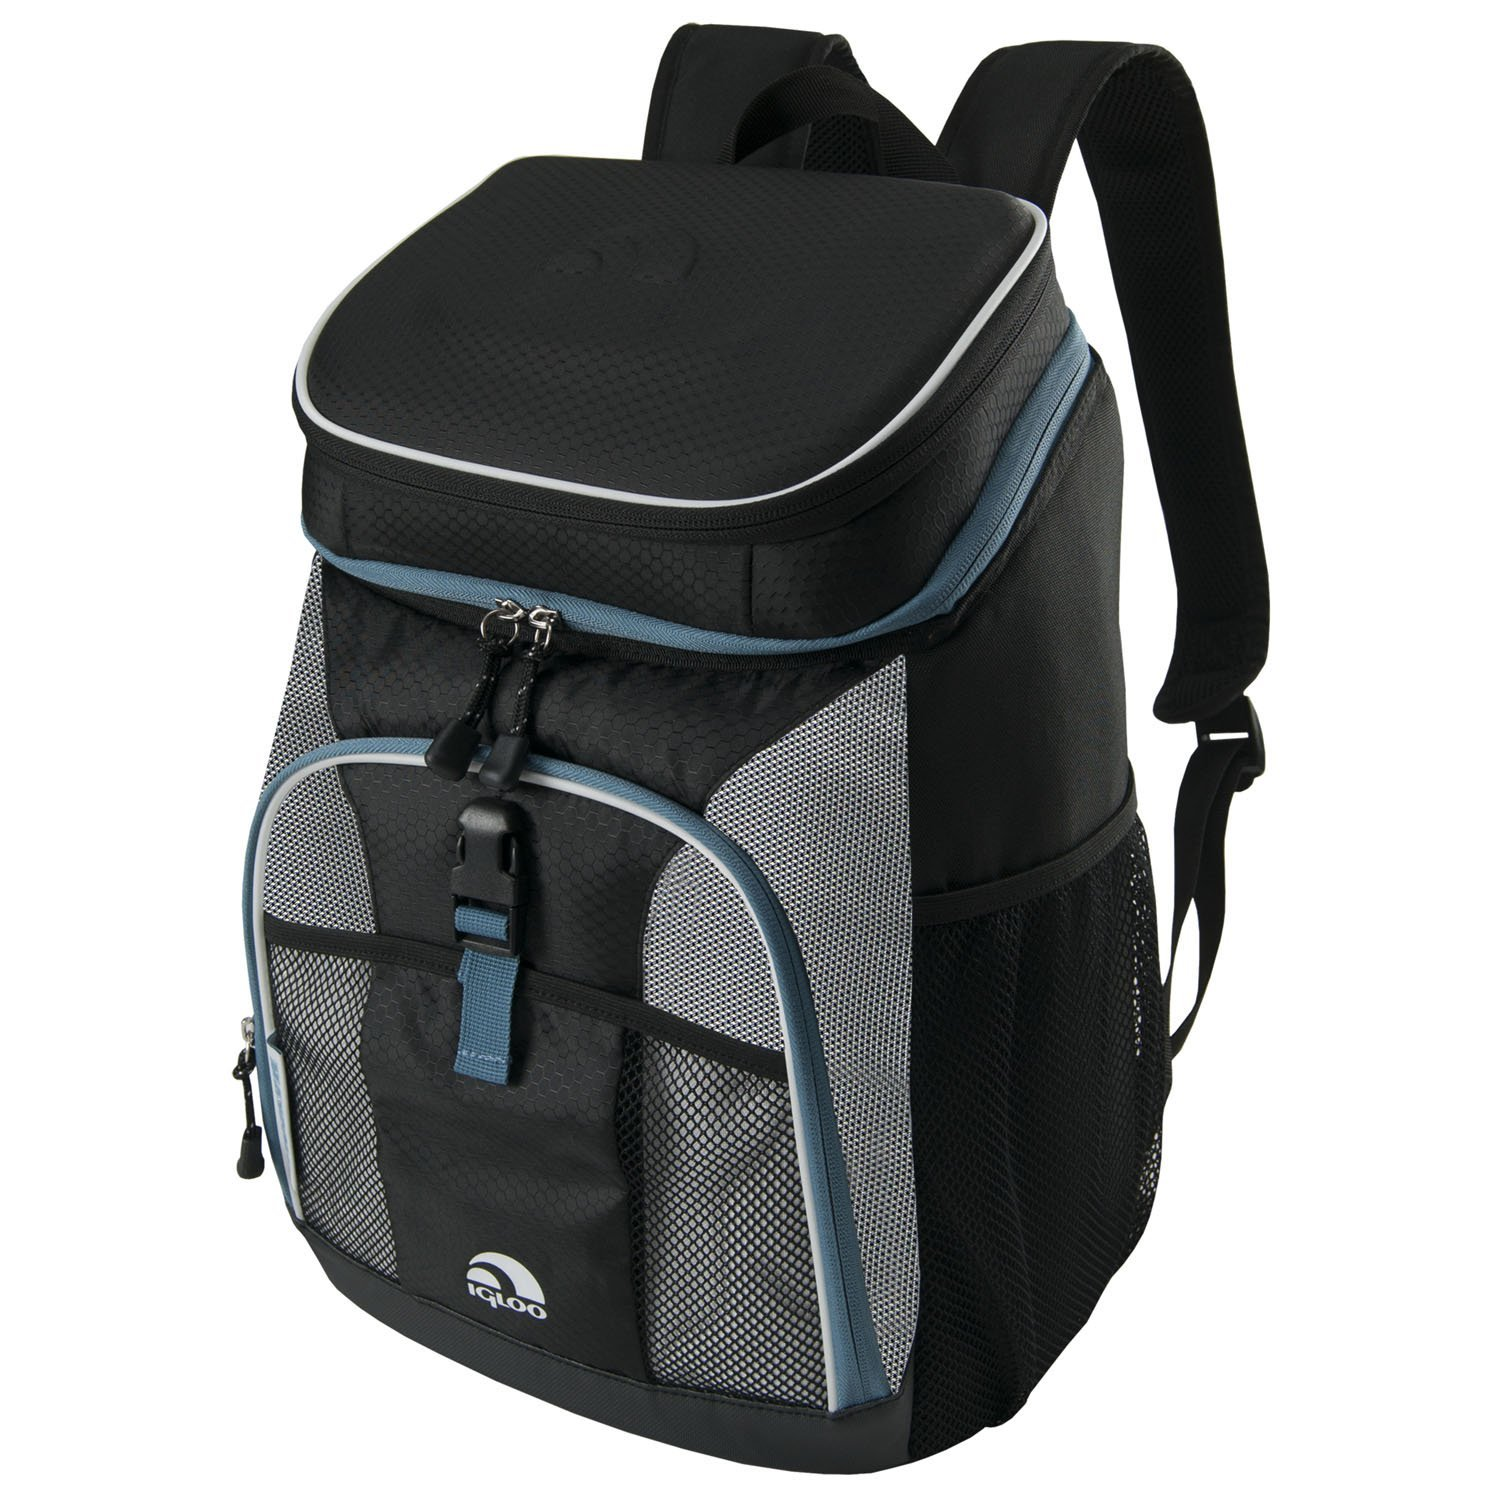 Igloo MaxCold Cooler Backpack